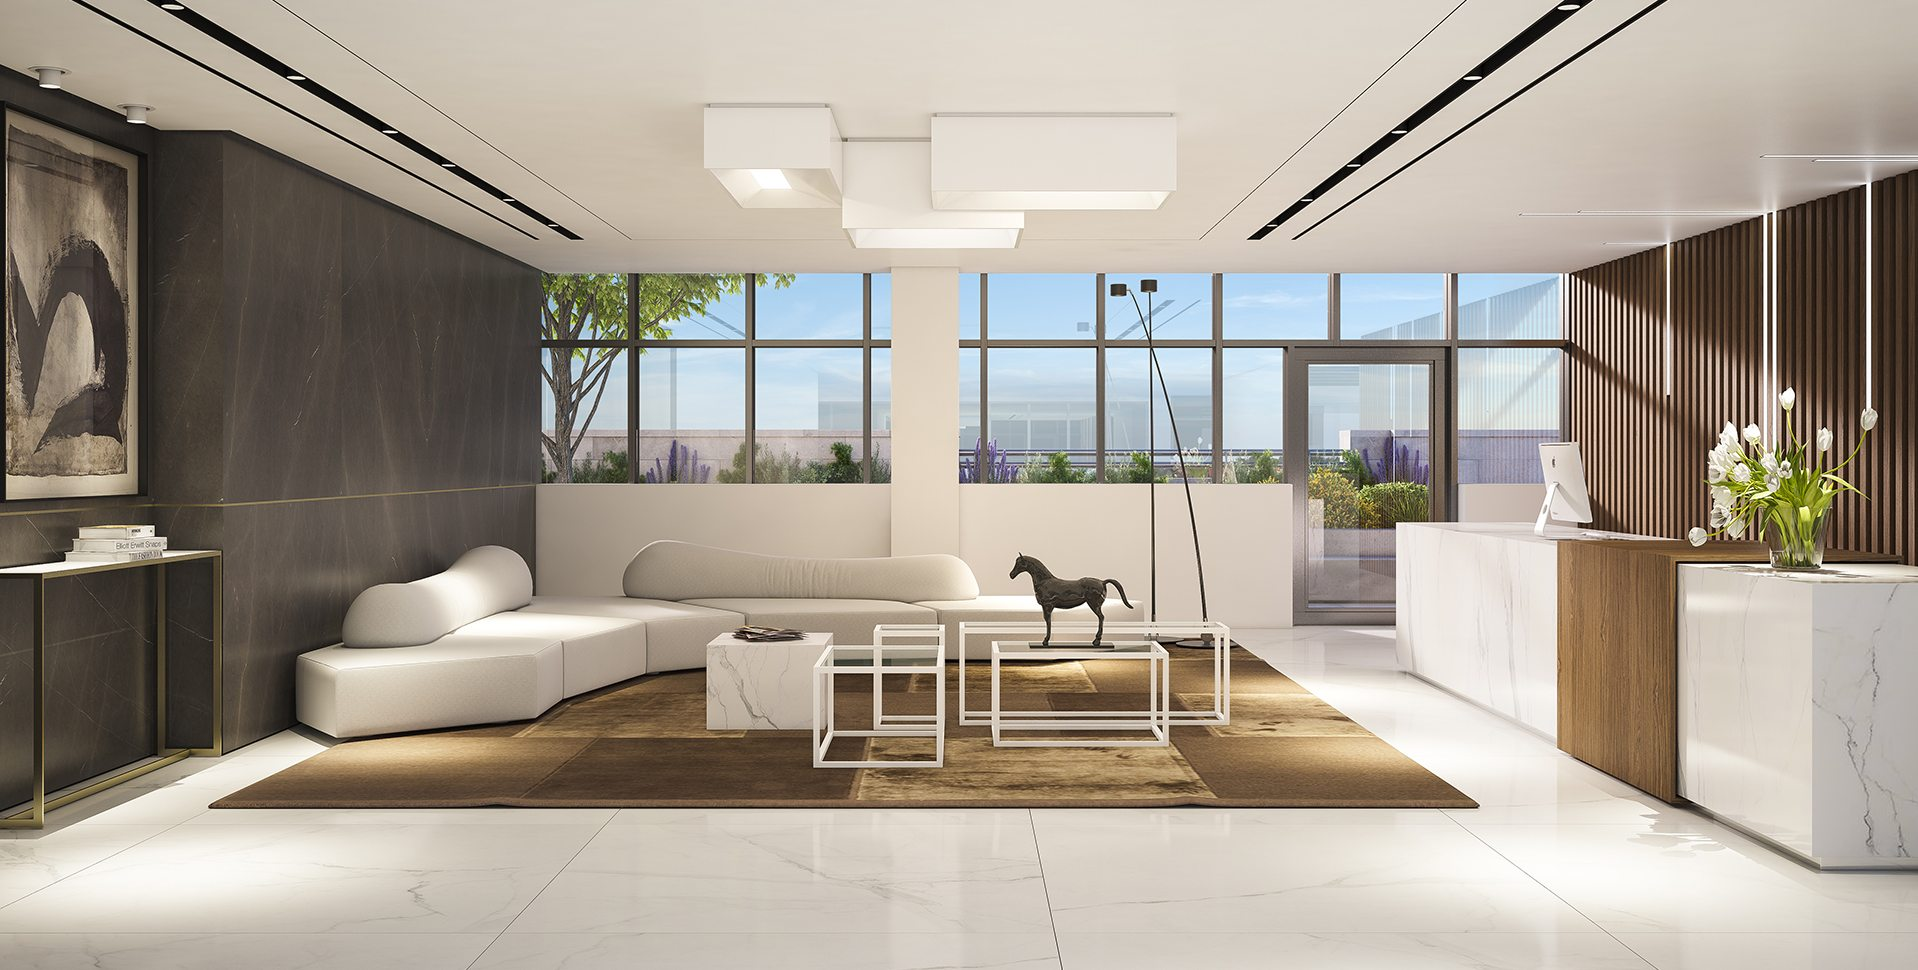 Architectural Visualization: Office Lobby